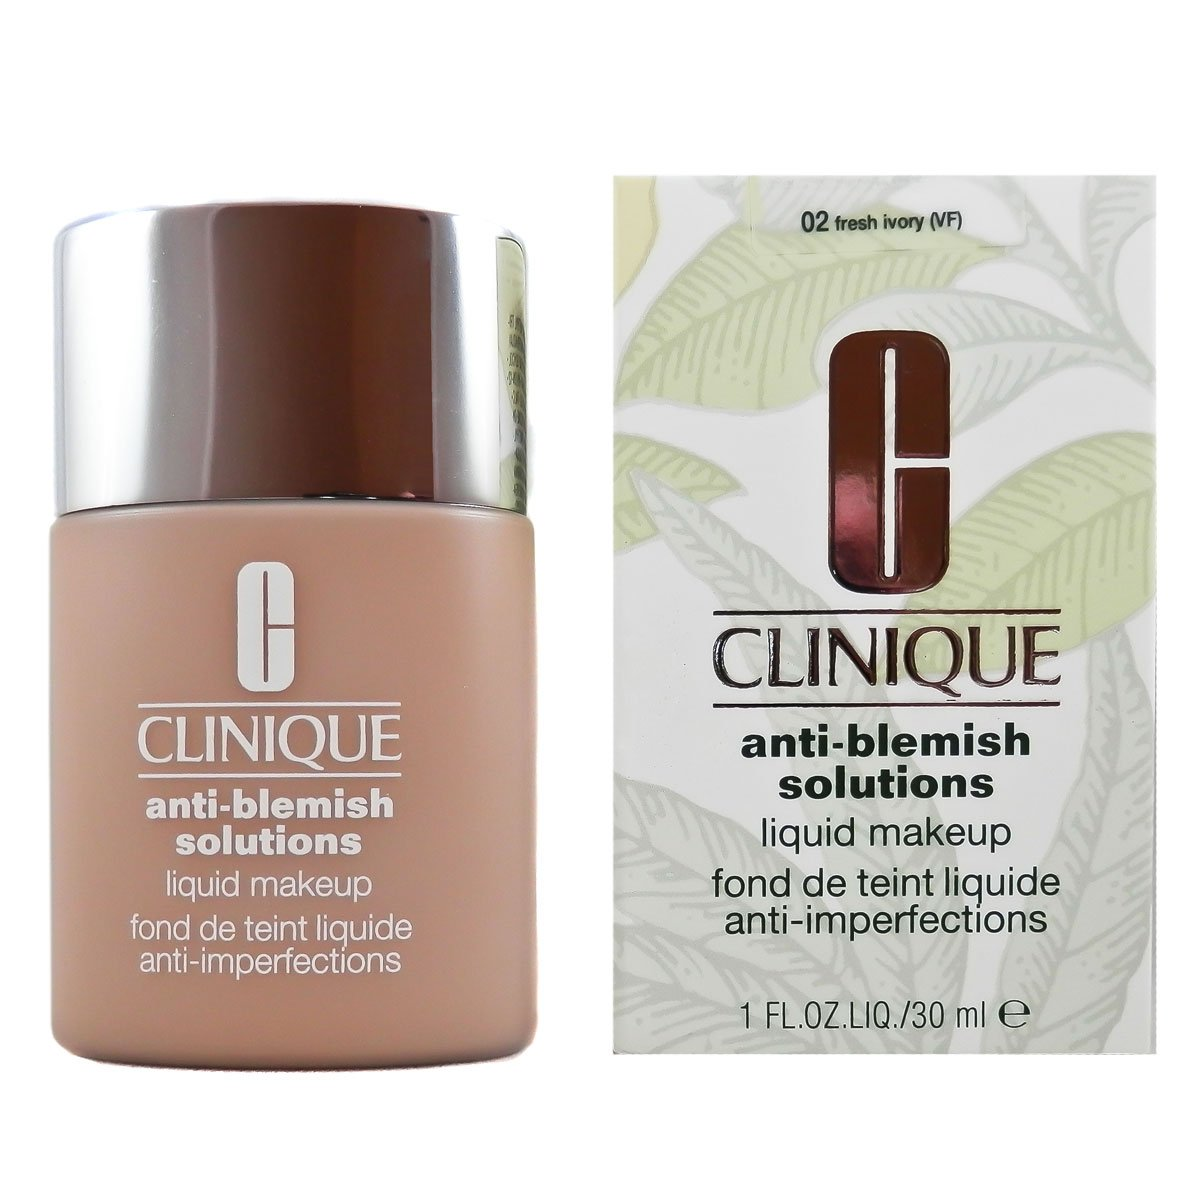 Clinique Anti-Blemish Solutions Liquid Makeup - 02 Fresh Ivory Clinique-0020714394776 CLI00088_-30